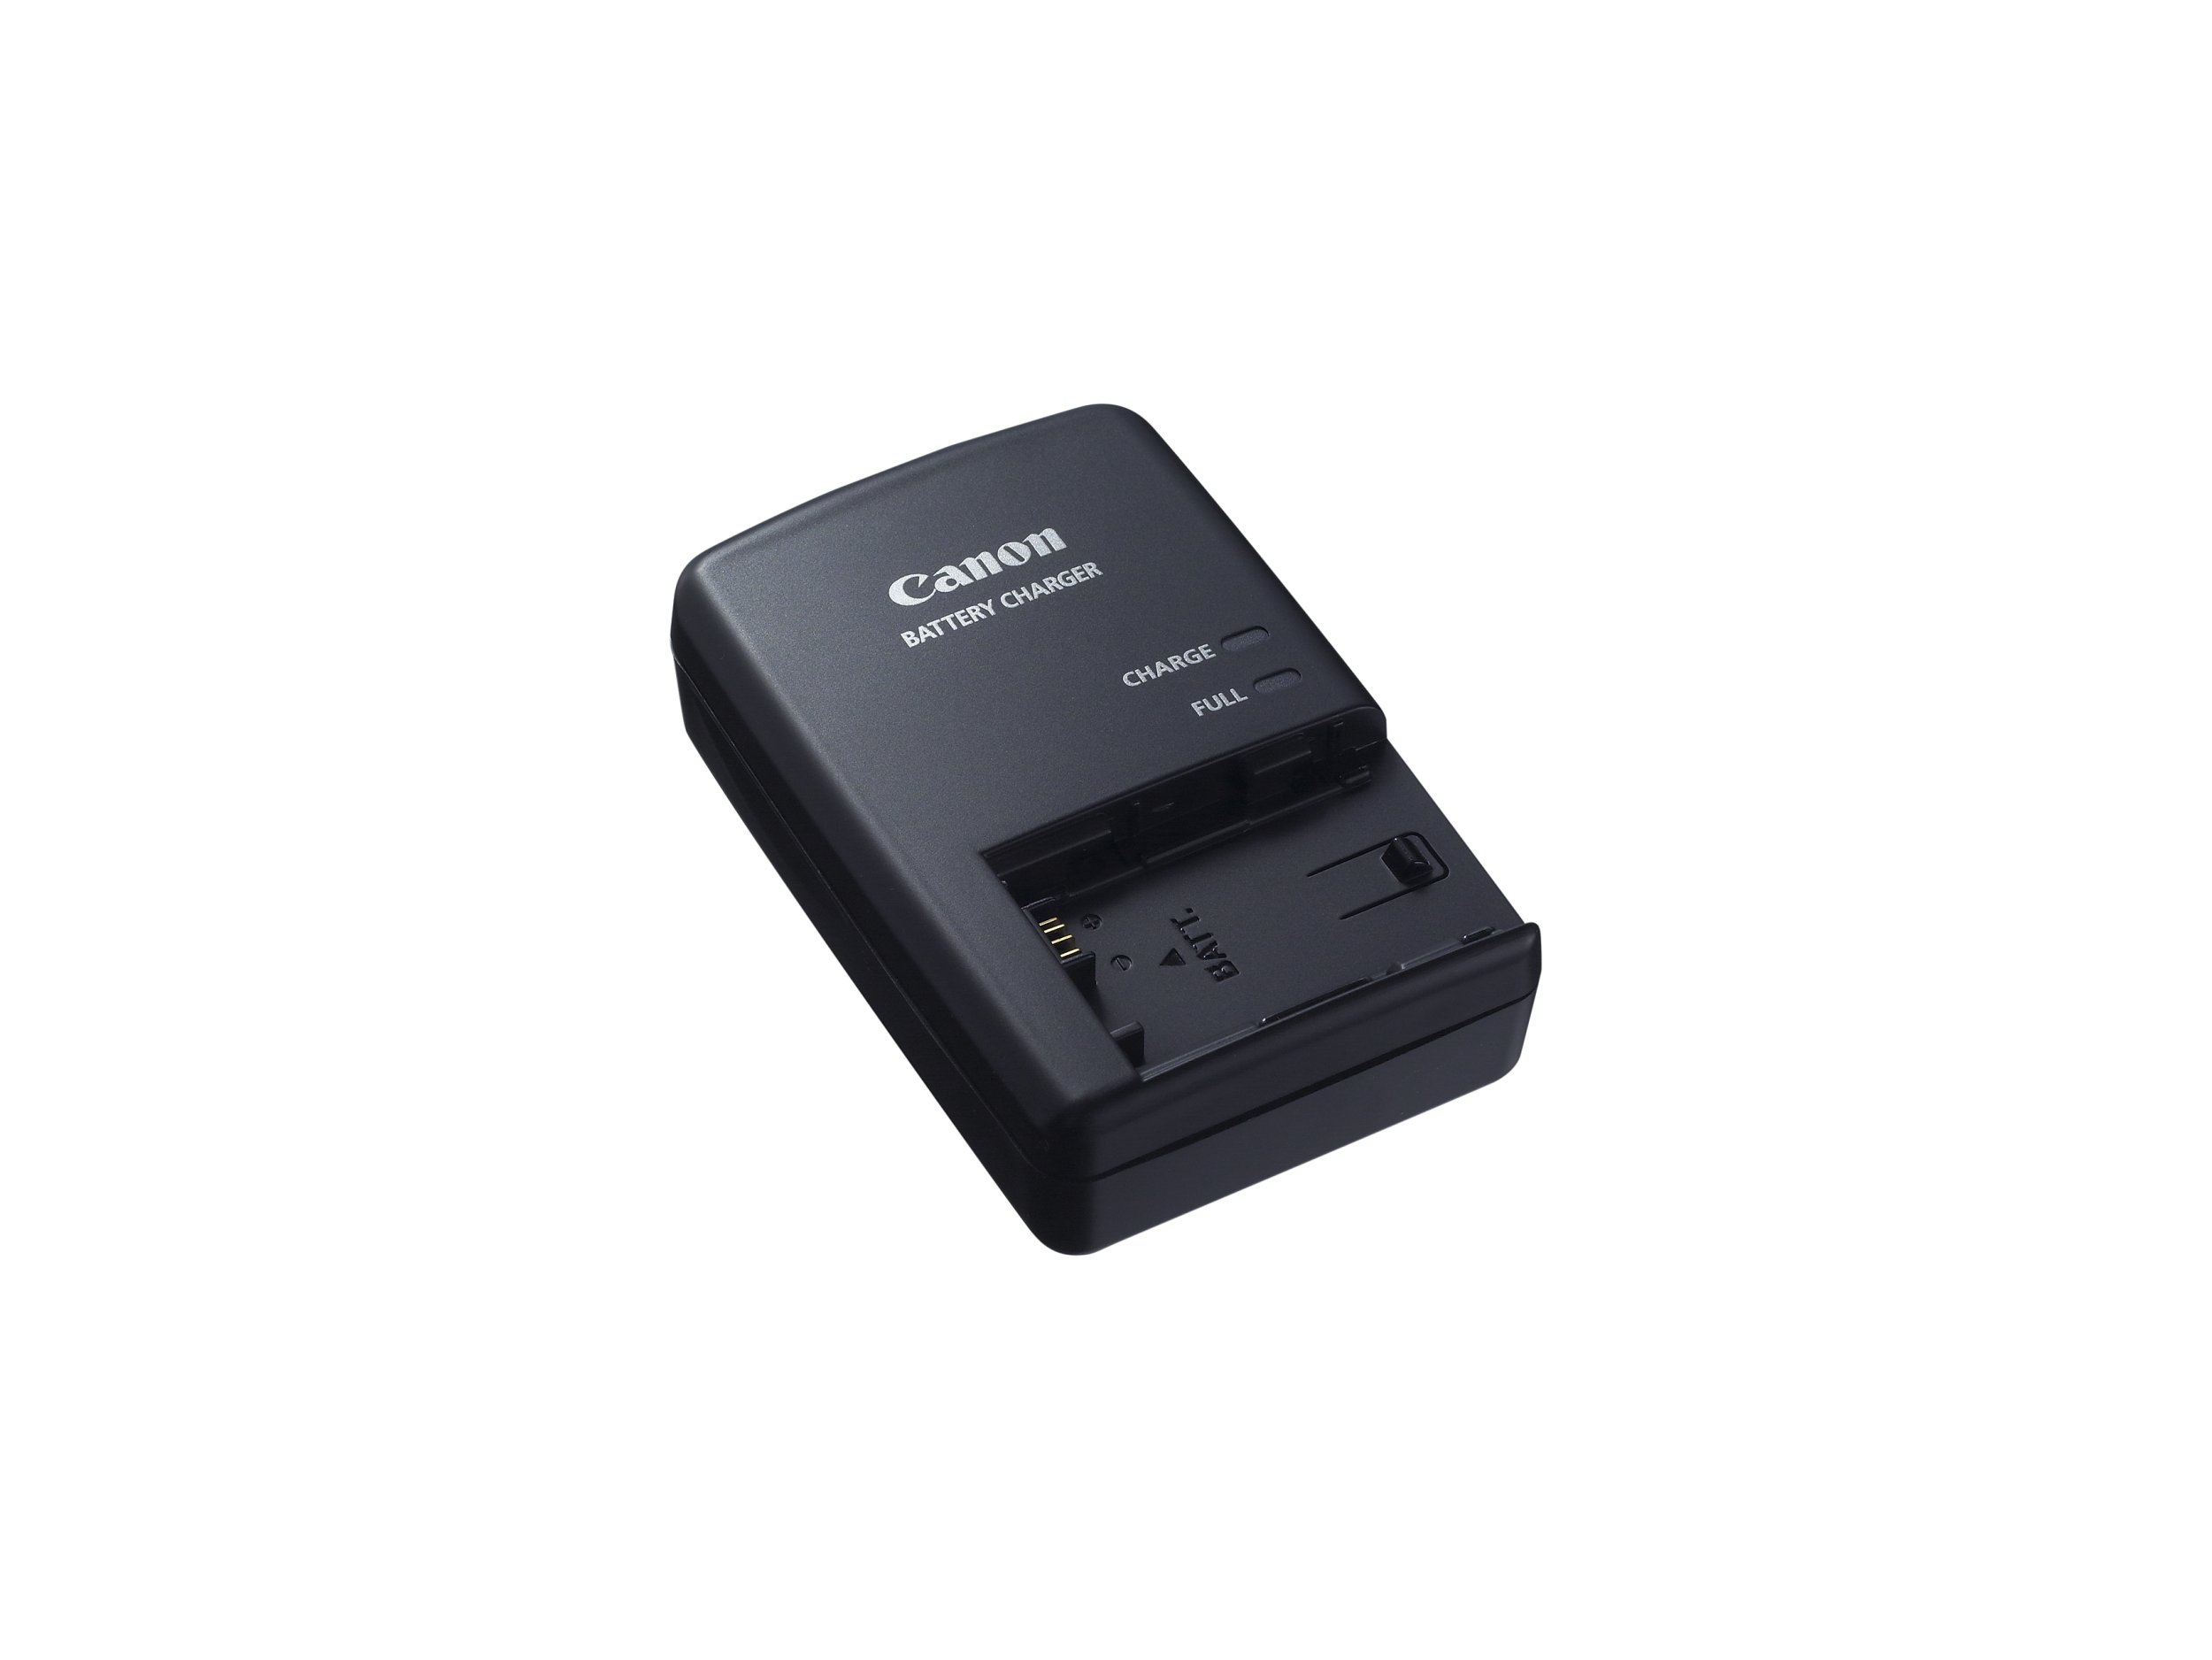 Canon Battery Charger CG-800 by Canon